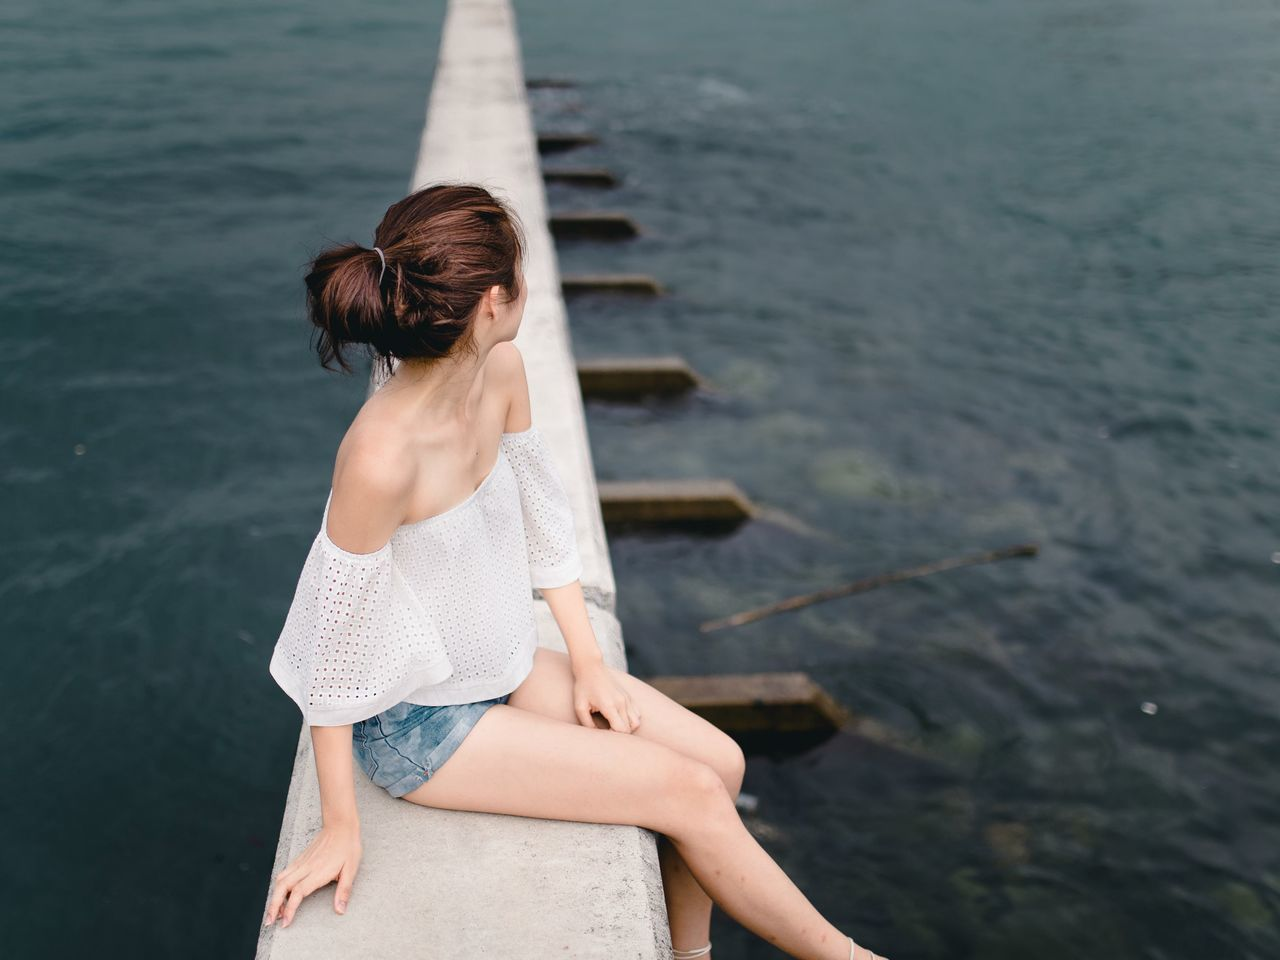 by the sea Water Summer Beauty Outdoors Sea One Woman Only Relaxation Beautiful People Women Of EyeEm Natural Light Portrait Nature Water_collection Nature Photography Clean Architecture_collection Architecture